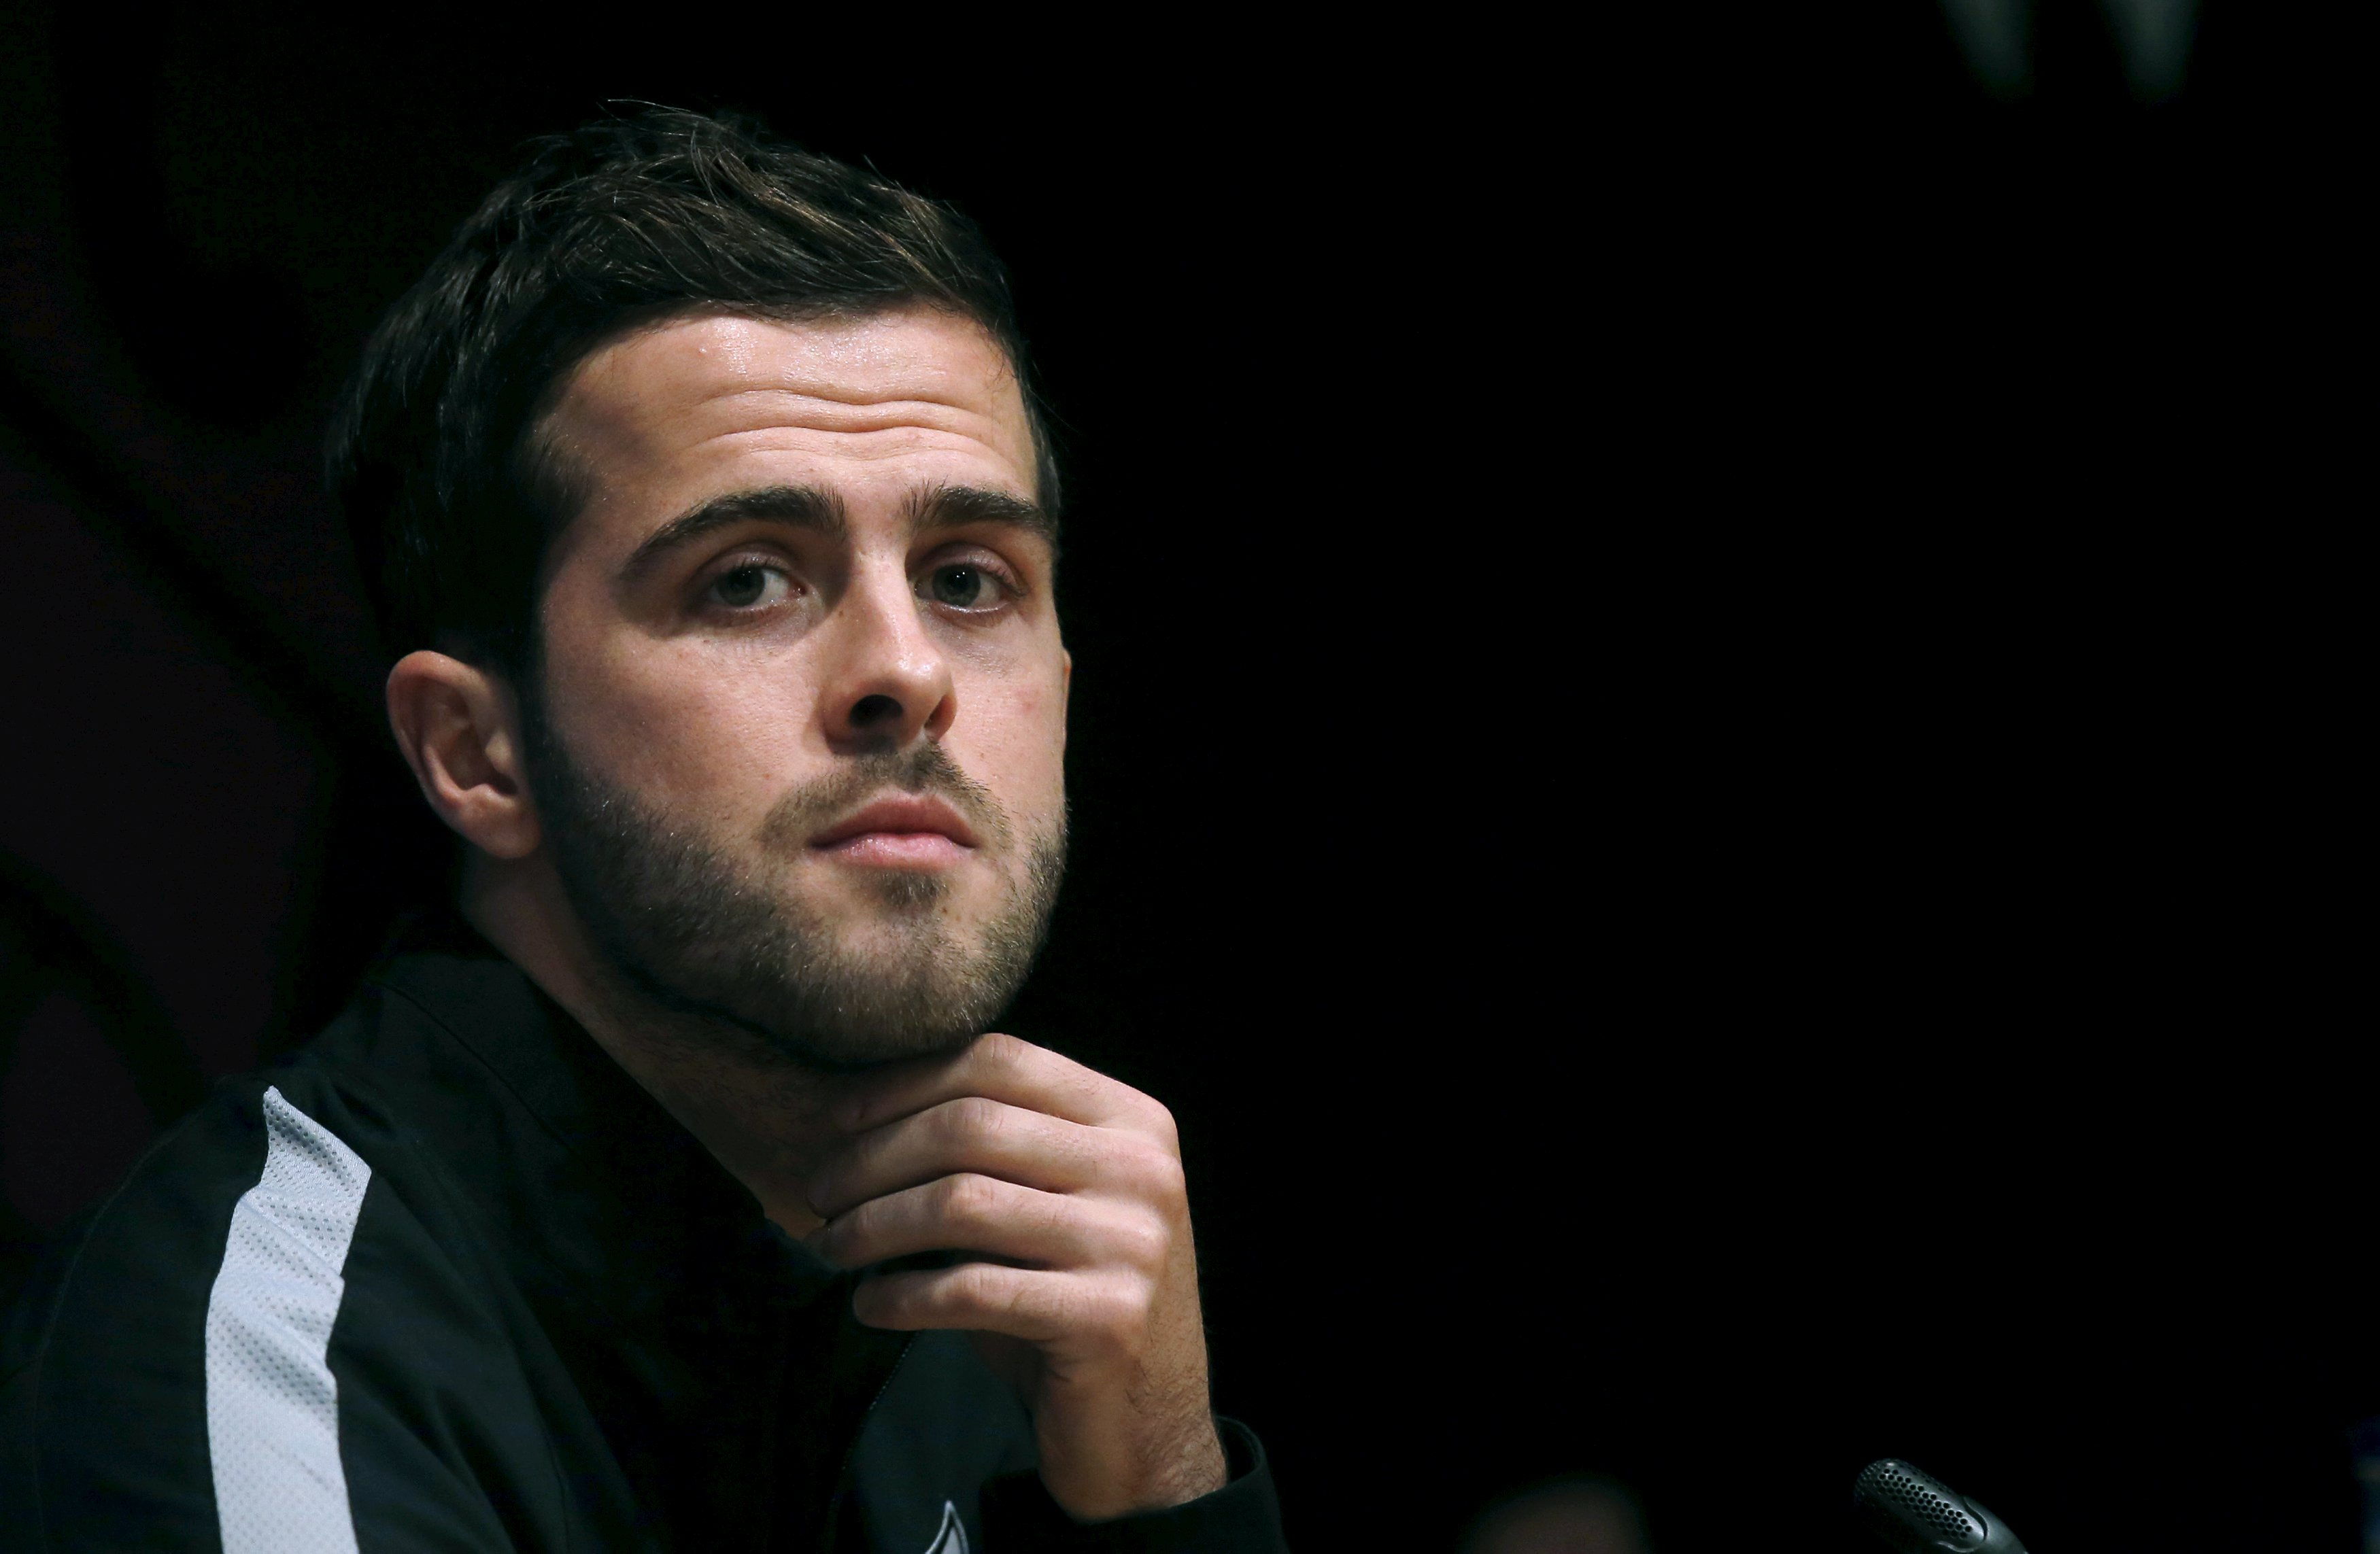 AS Roma's player Pjanic attends a news conference, a day ahead of their soccer Champions League match against FC Barcelona, at Camp Nou stadium in Barcelona